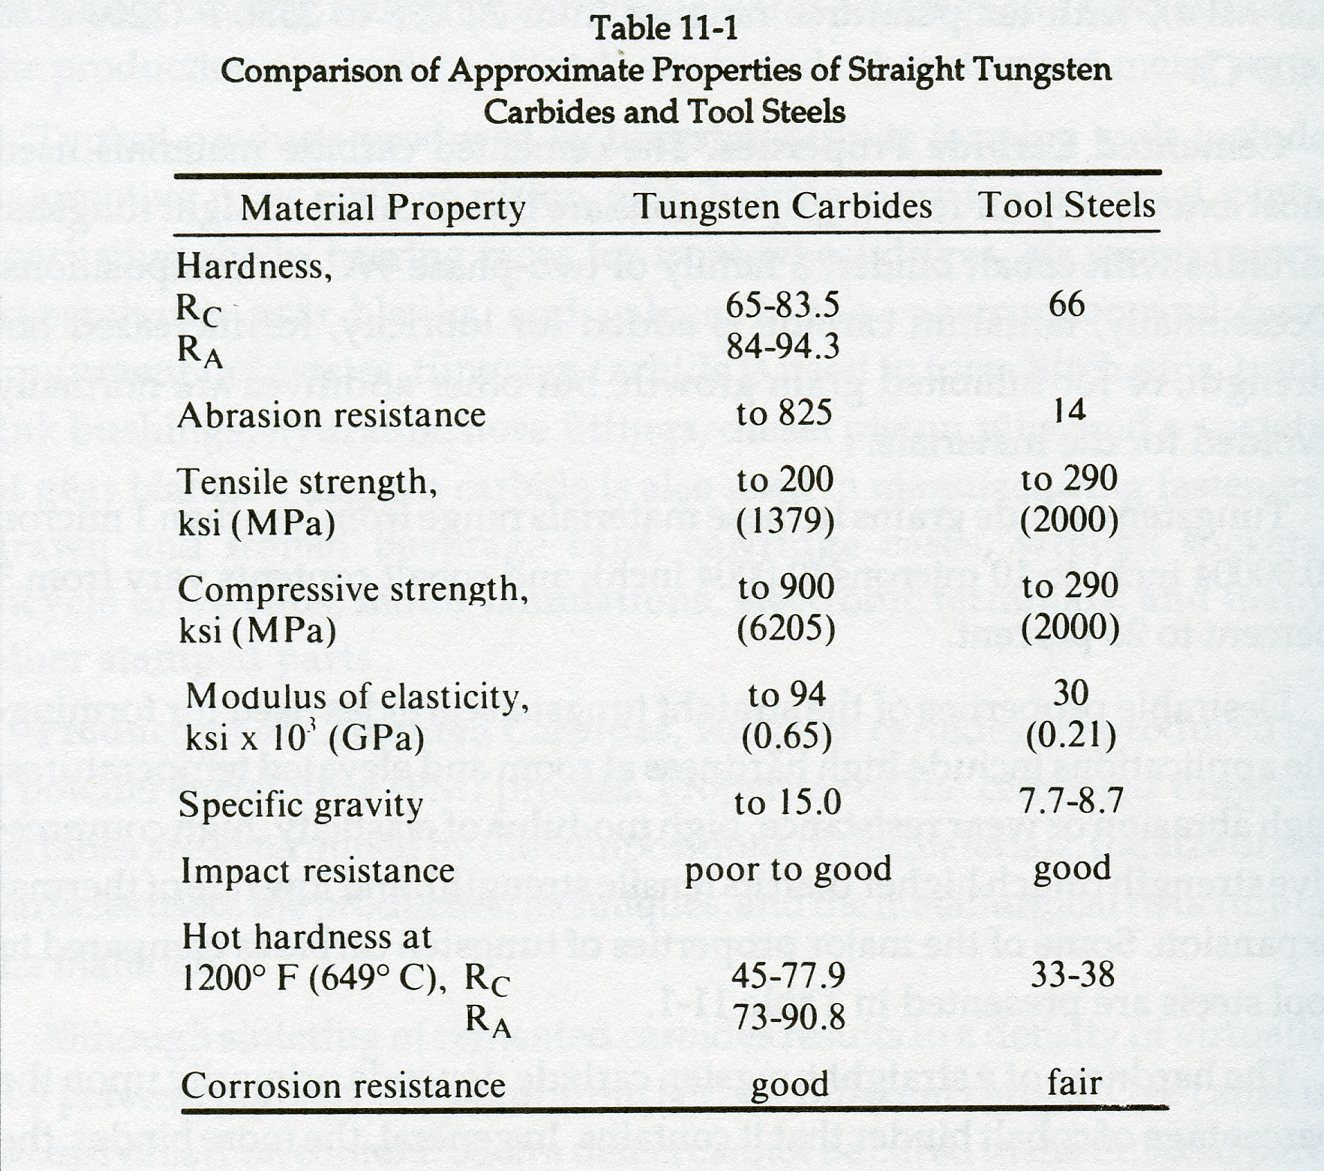 Comparison of approximate properties of straight tungsten carbides comparison of approximate properties of straight tungsten carbides and tool steels urtaz Choice Image